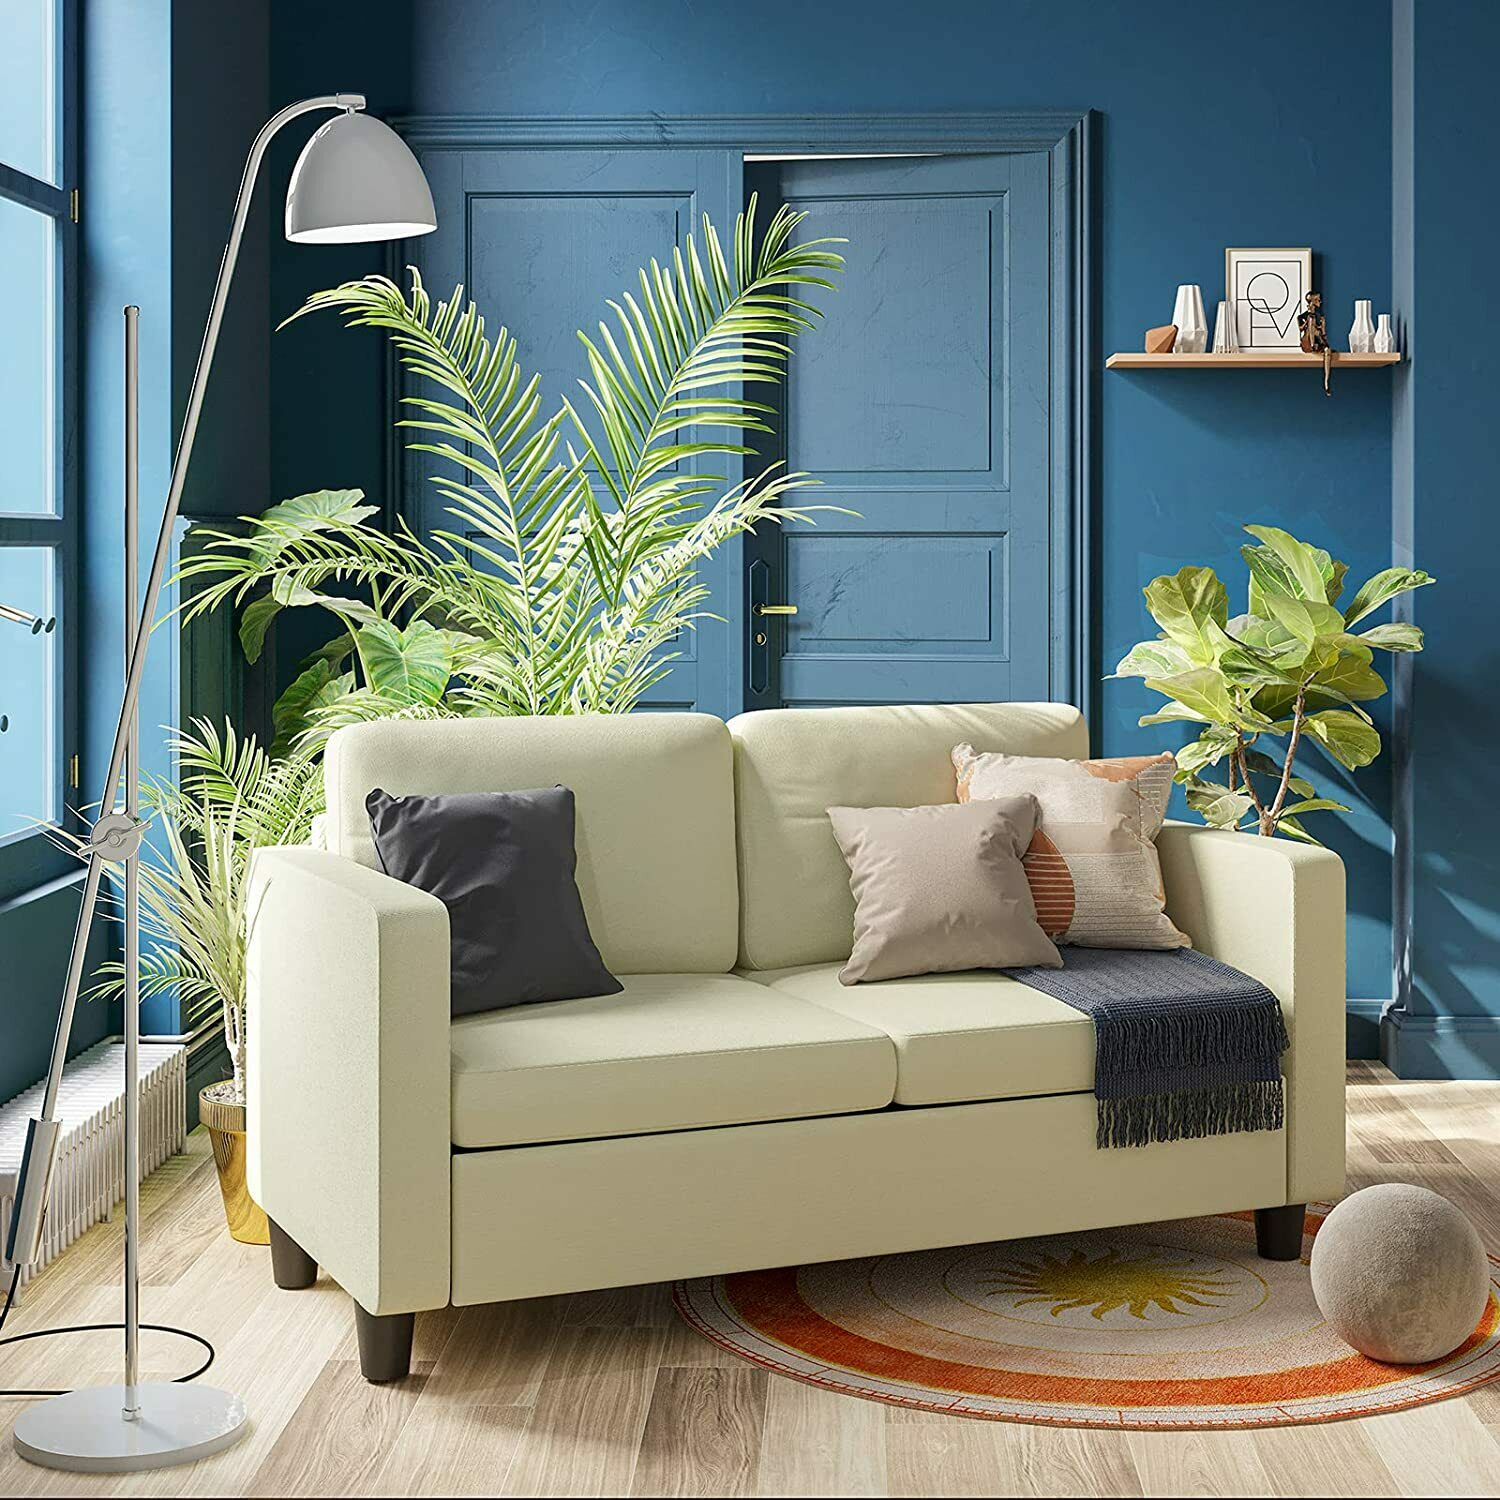 Modern 2 Seater Couch Sofa Living Room Loveseat Fabric Love Seat Small Space